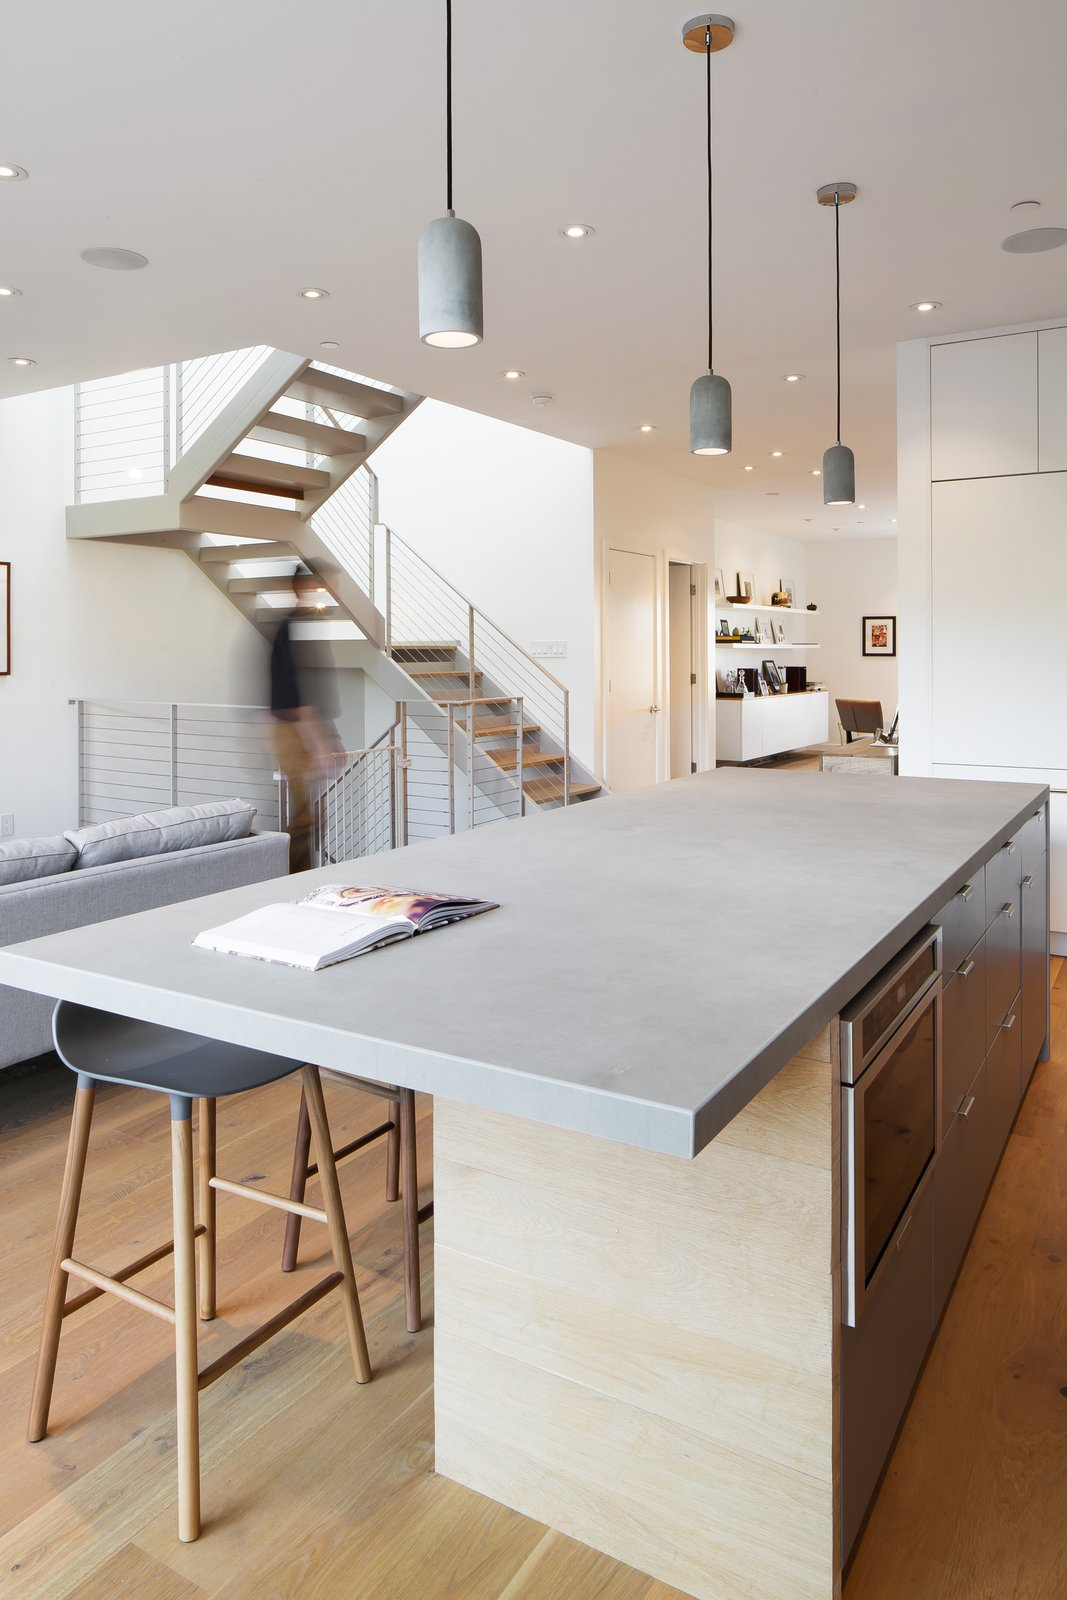 The family wanted to make their home beautiful, but also functional. When designing the renovation, they paid particular attention to making sure the common spaces could serve multiple functions and grow alongside the family. Tagged: Kitchen, Pendant Lighting, and Light Hardwood Floor.  Best Photos from Revamping the San Francisco Vernacular, Modern Design and Technology Serves A Busy Family